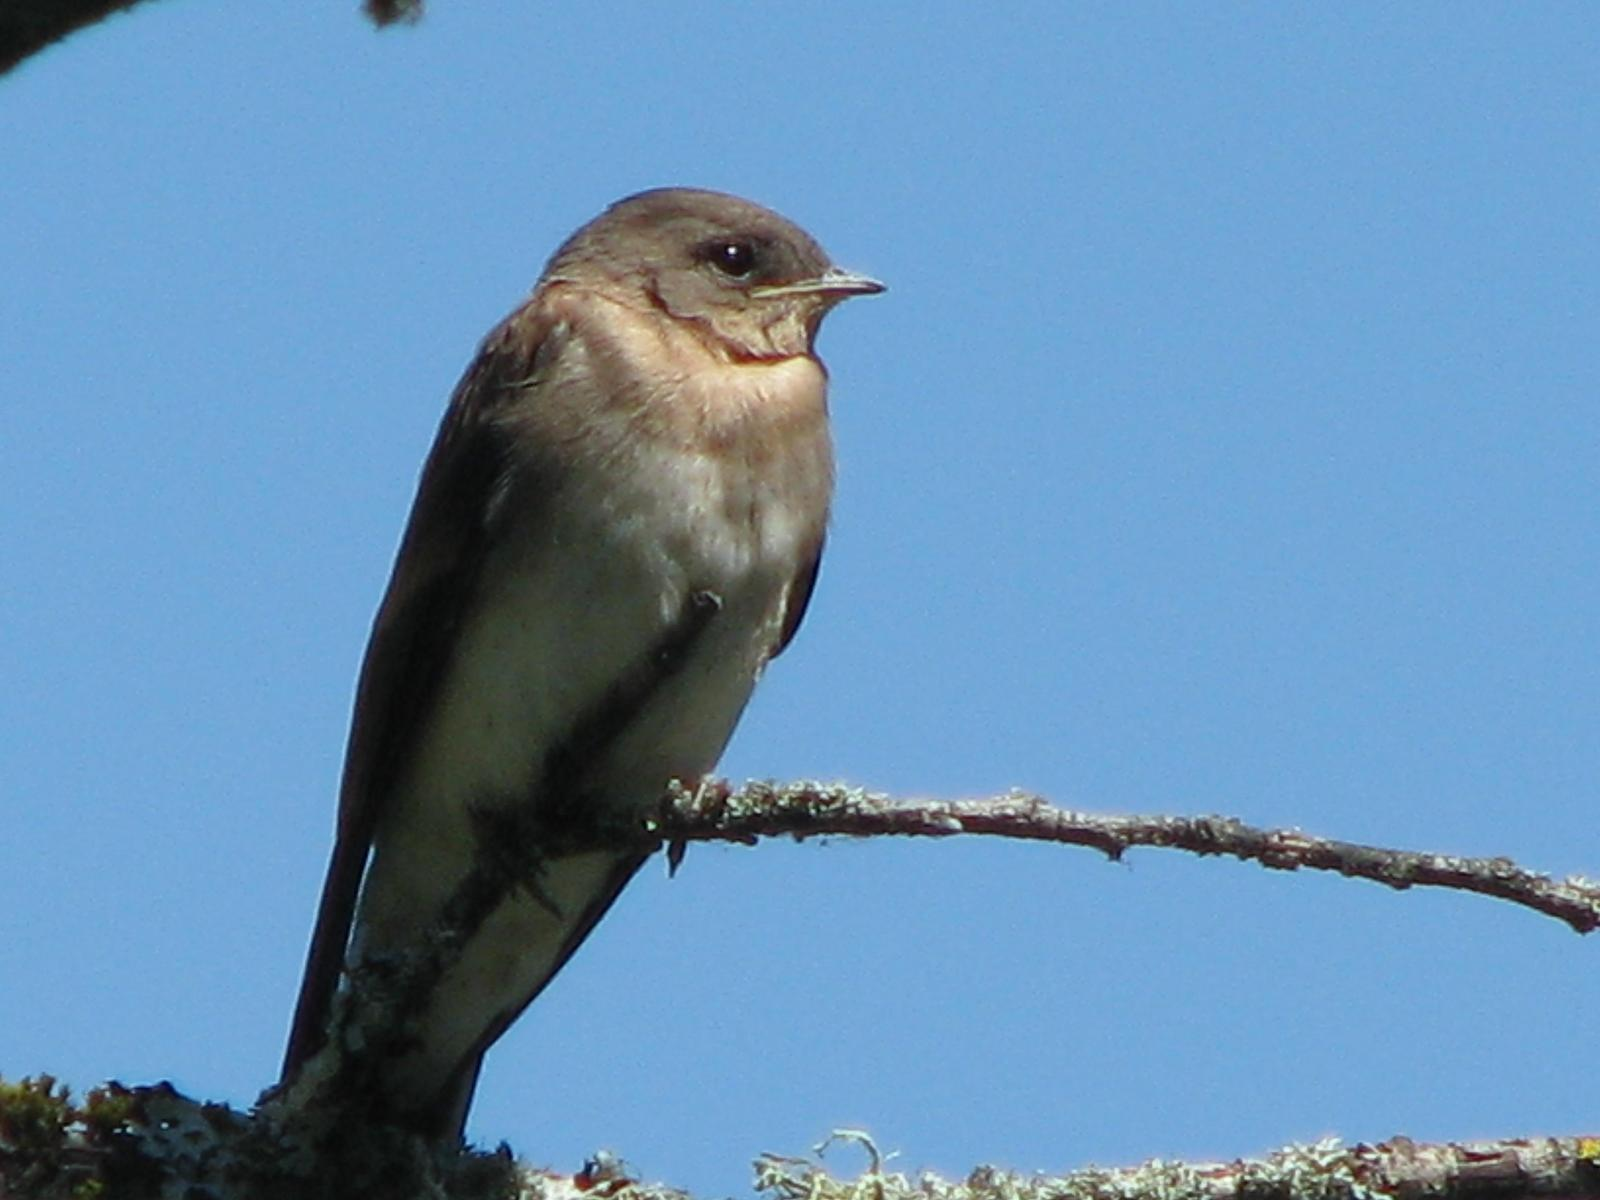 Northern Rough-winged Swallow (Northern) Photo by Ted Goshulak